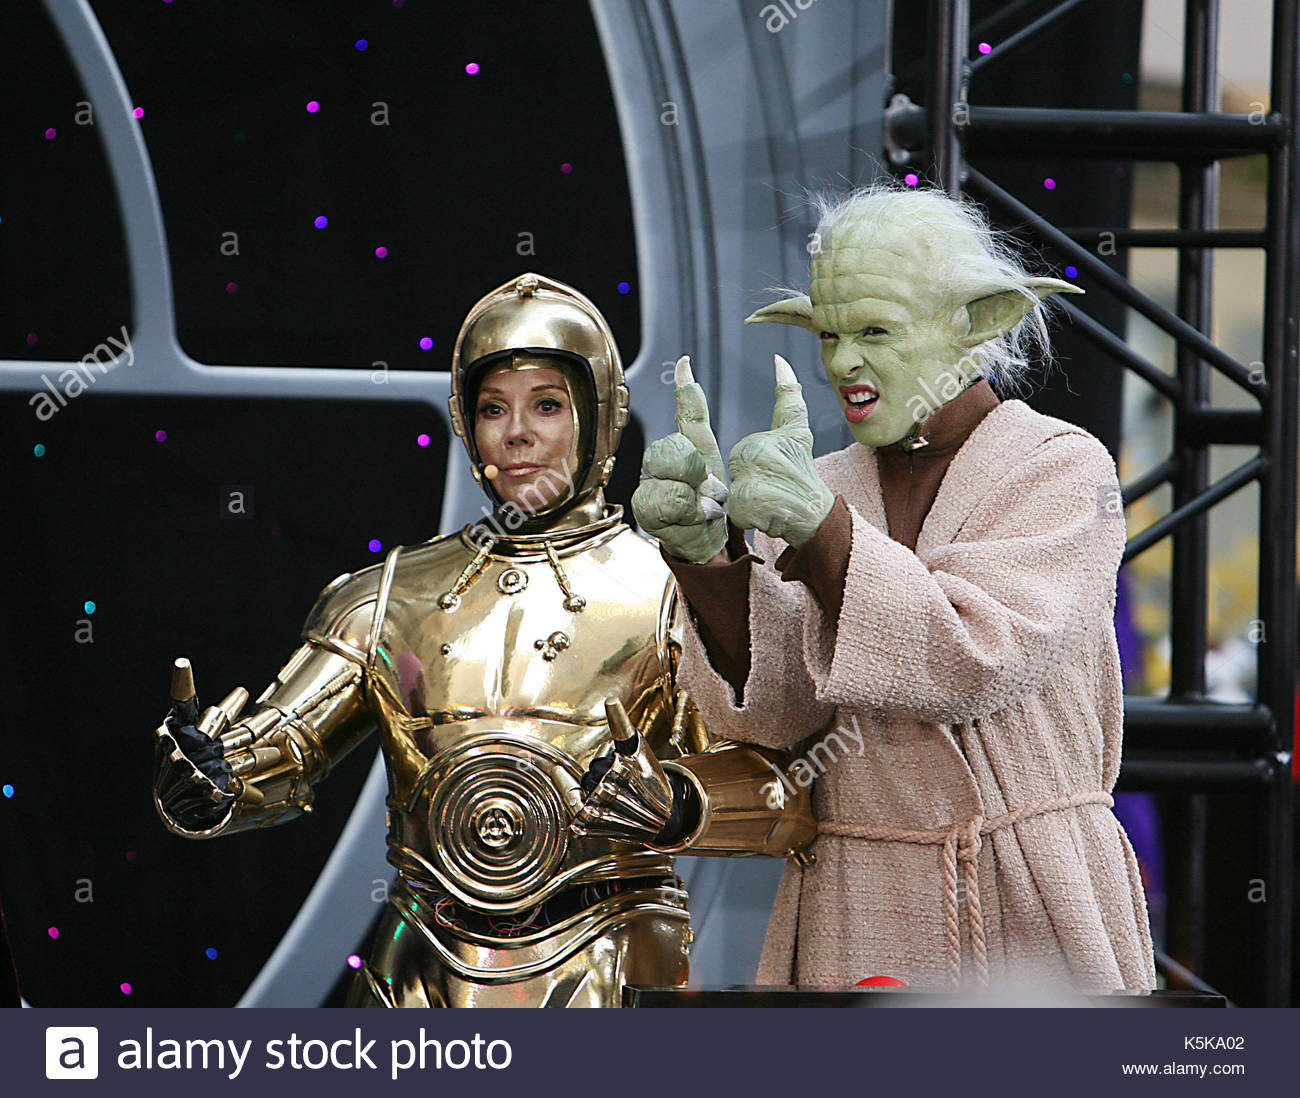 Kathie Lee Gifford Hoda Kotbe The Hosts Of Today Show Dressed Up For Halloween As Cast Star Wars Matt Lauer Was Luke Skywalker Meredith Viera